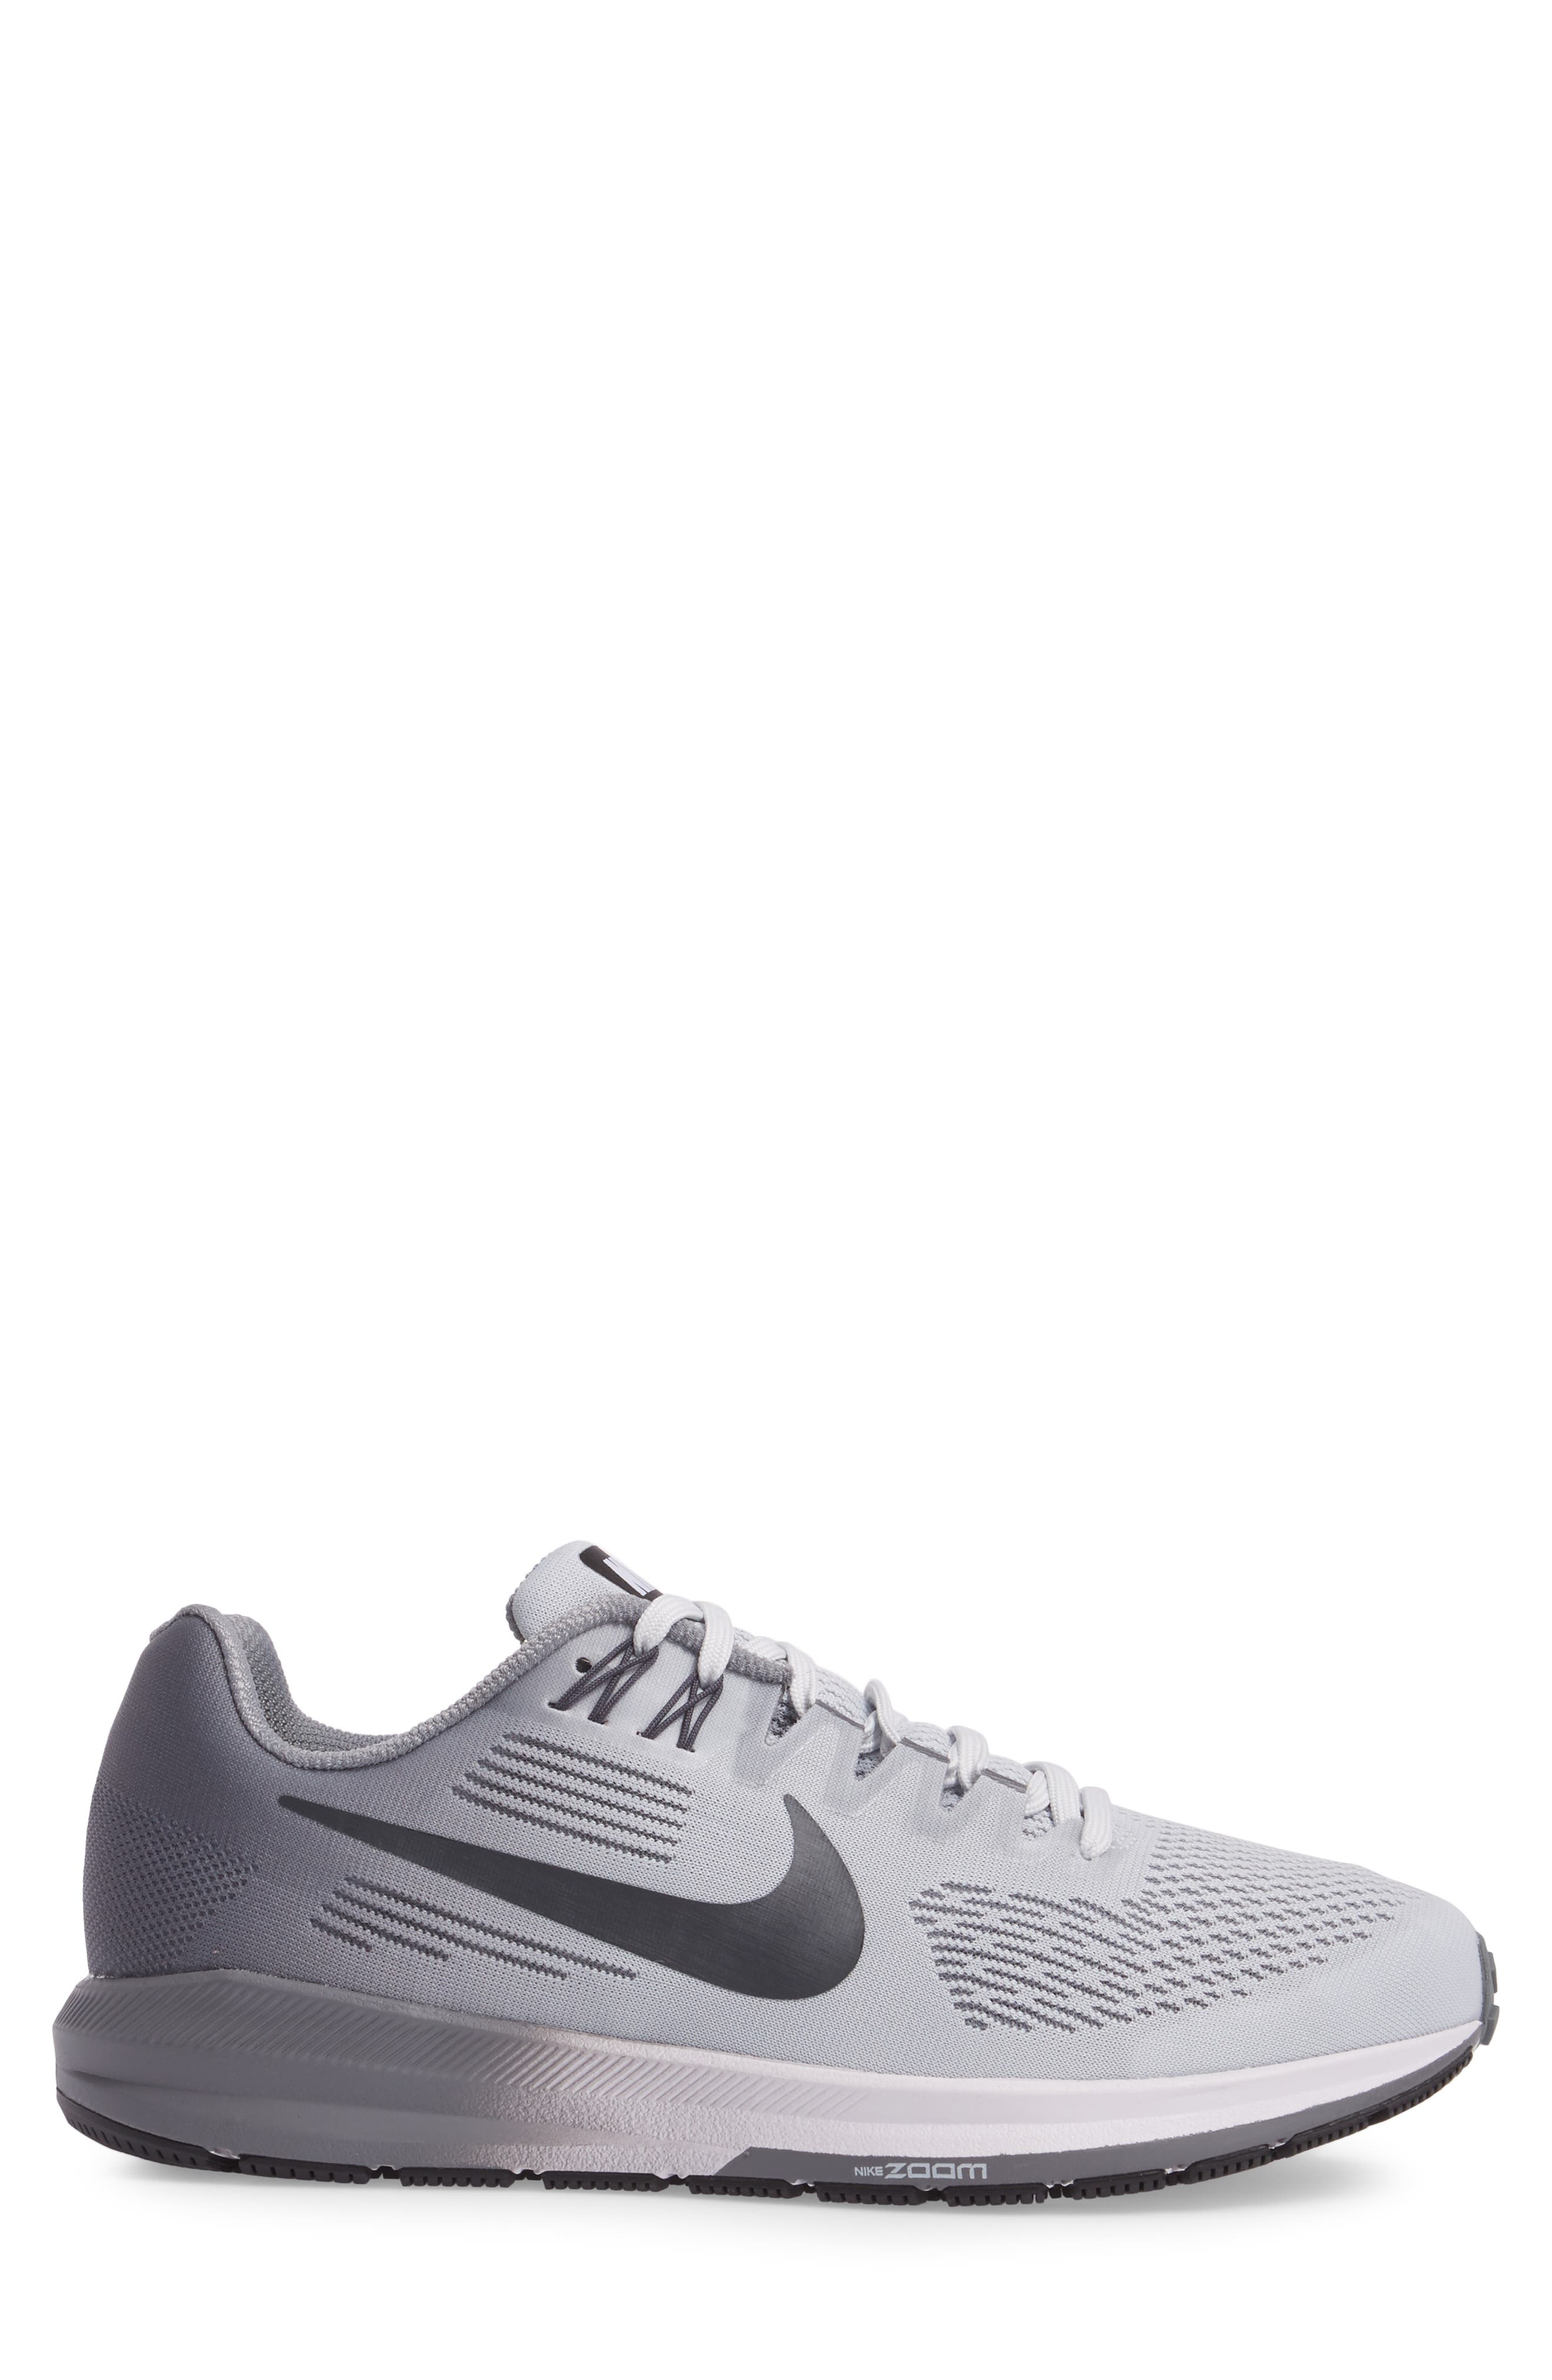 Air Zoom Structure 21 Running Shoe,                             Alternate thumbnail 3, color,                             Platinum/Anthracite/Cool Grey